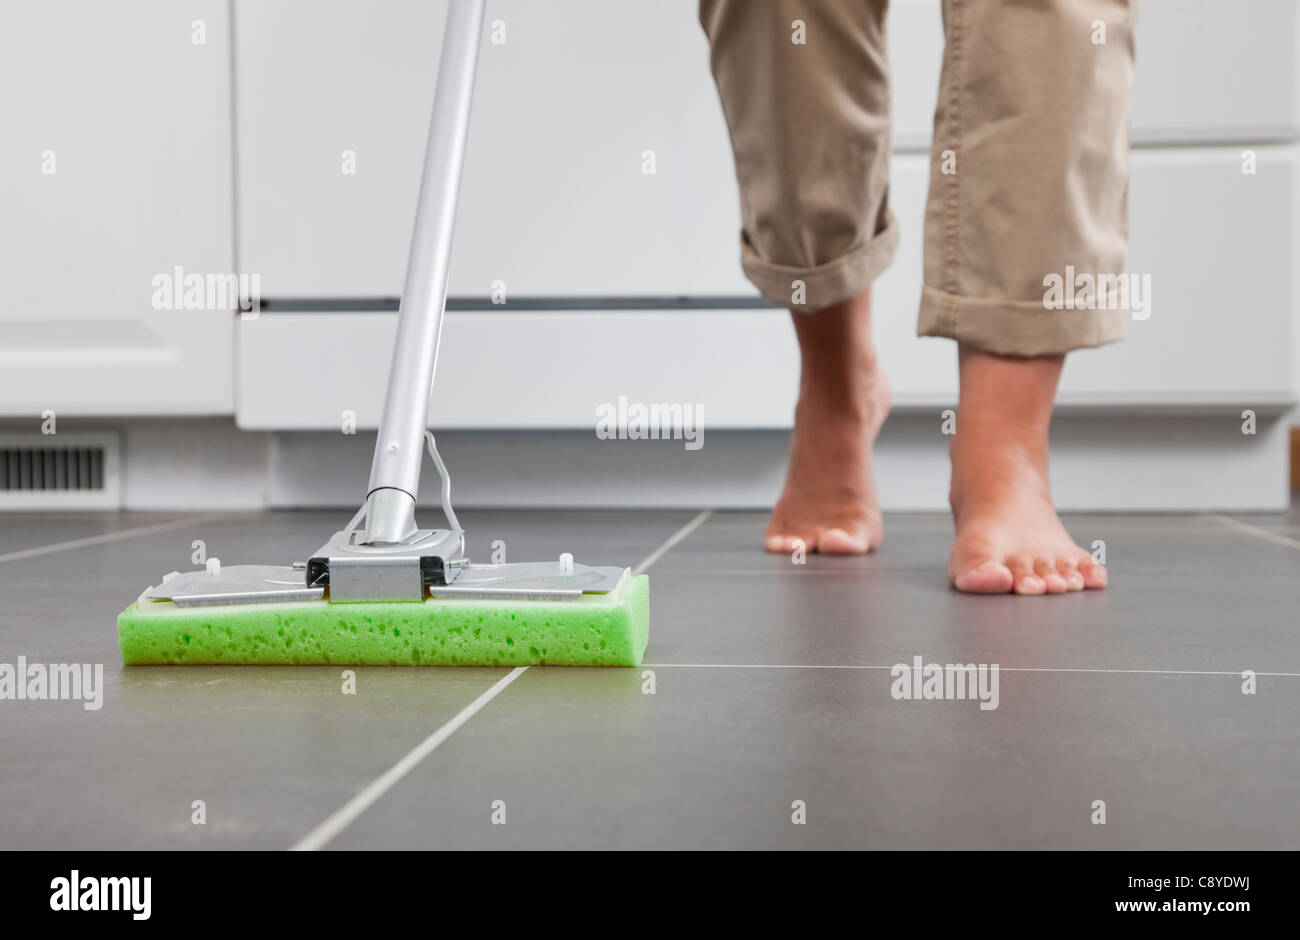 USA, Illinois, Metamora, Barefoot woman cleaning kitchen floor, low section - Stock Image